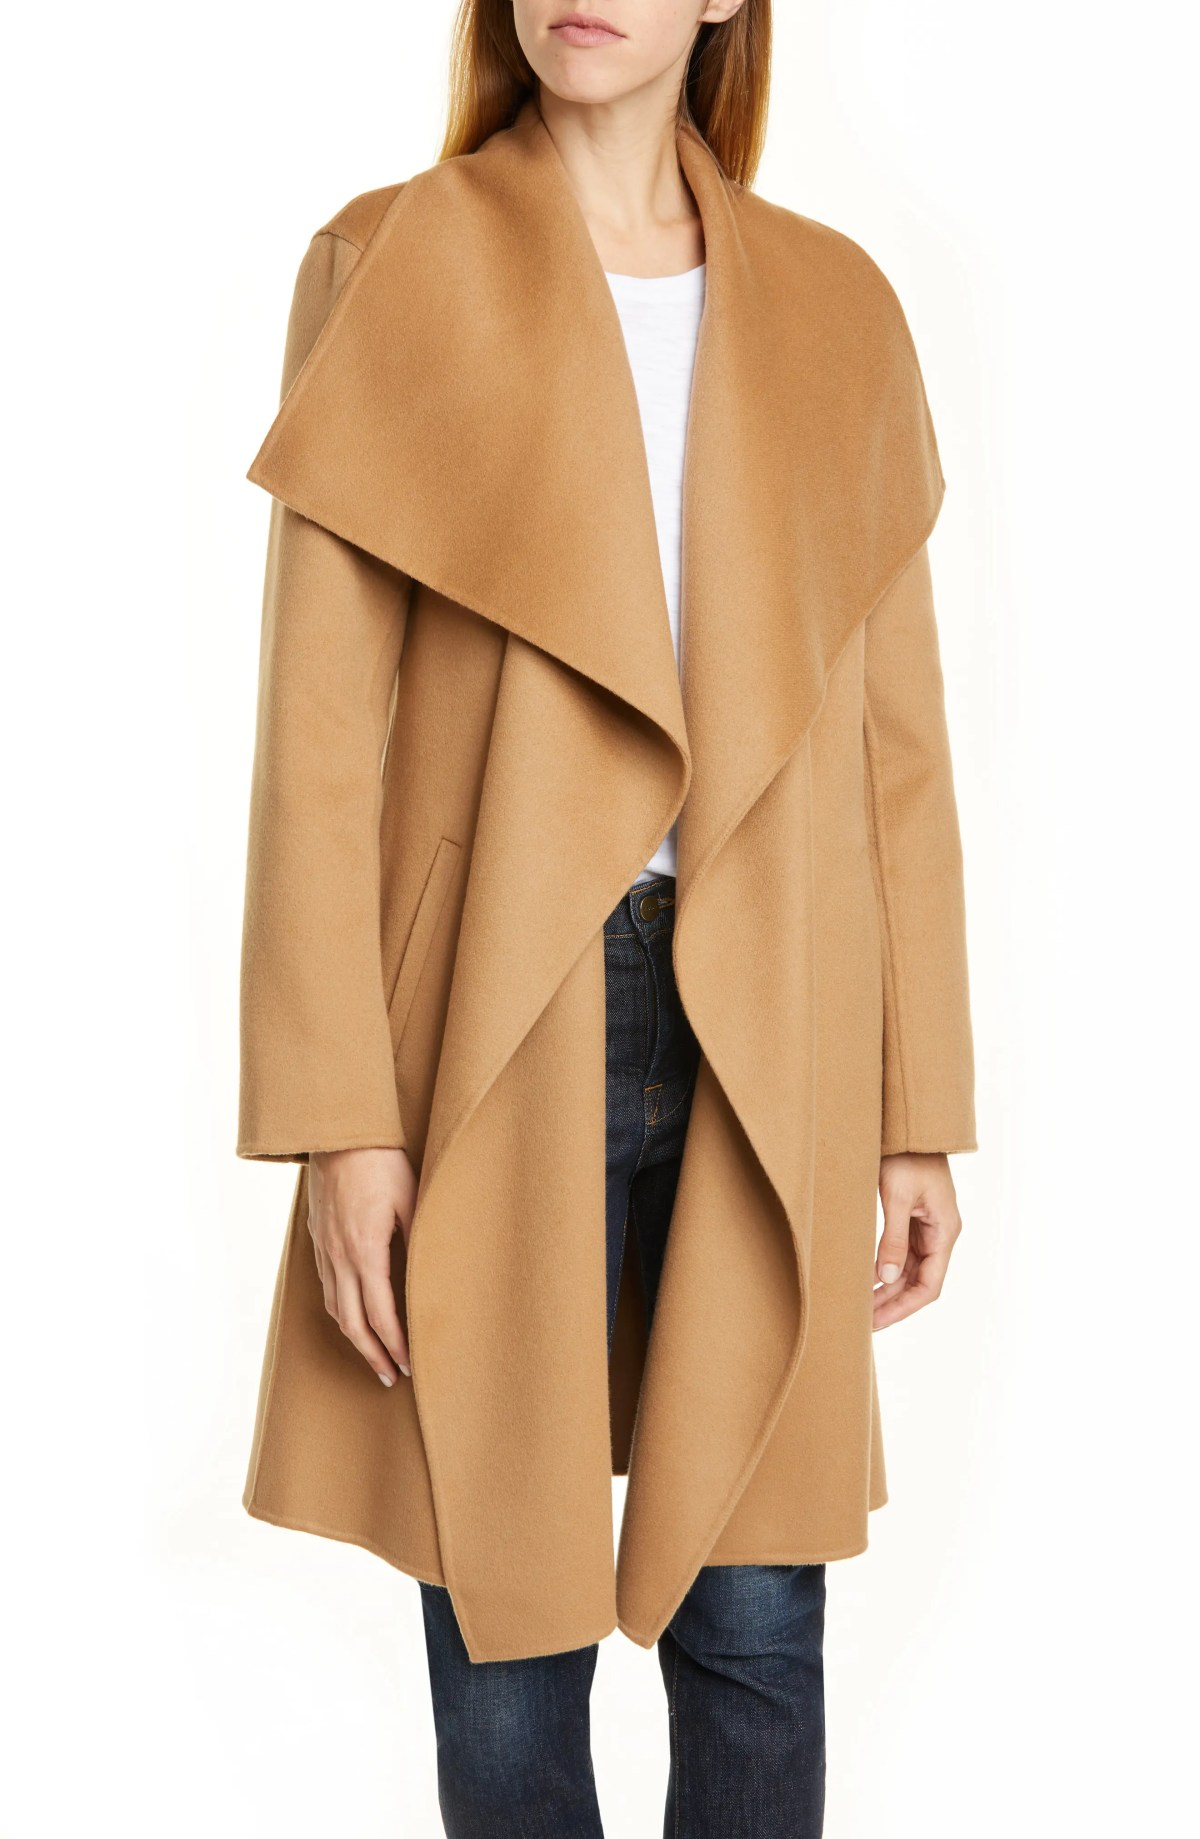 NORDSTROM SIGNATURE Cascade Collar Double Face Wool & Cashmere Coat, Main, color, TAN CAMEL